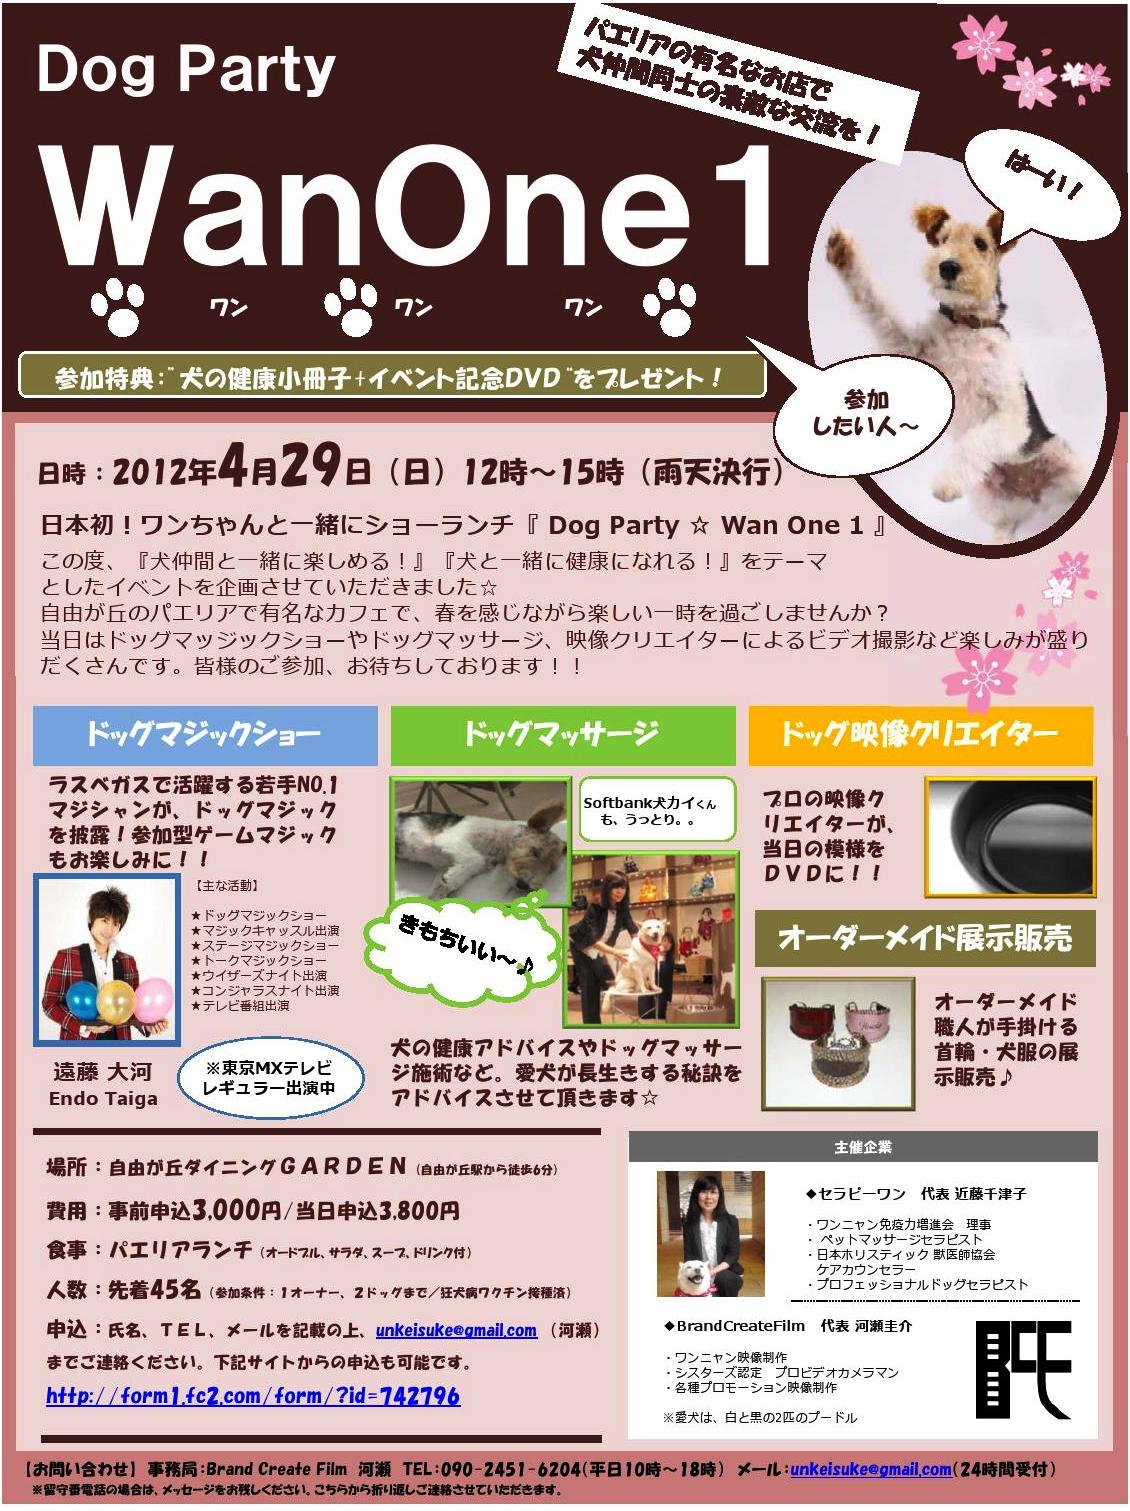 Dogparty_wanone1_vol1_20120429